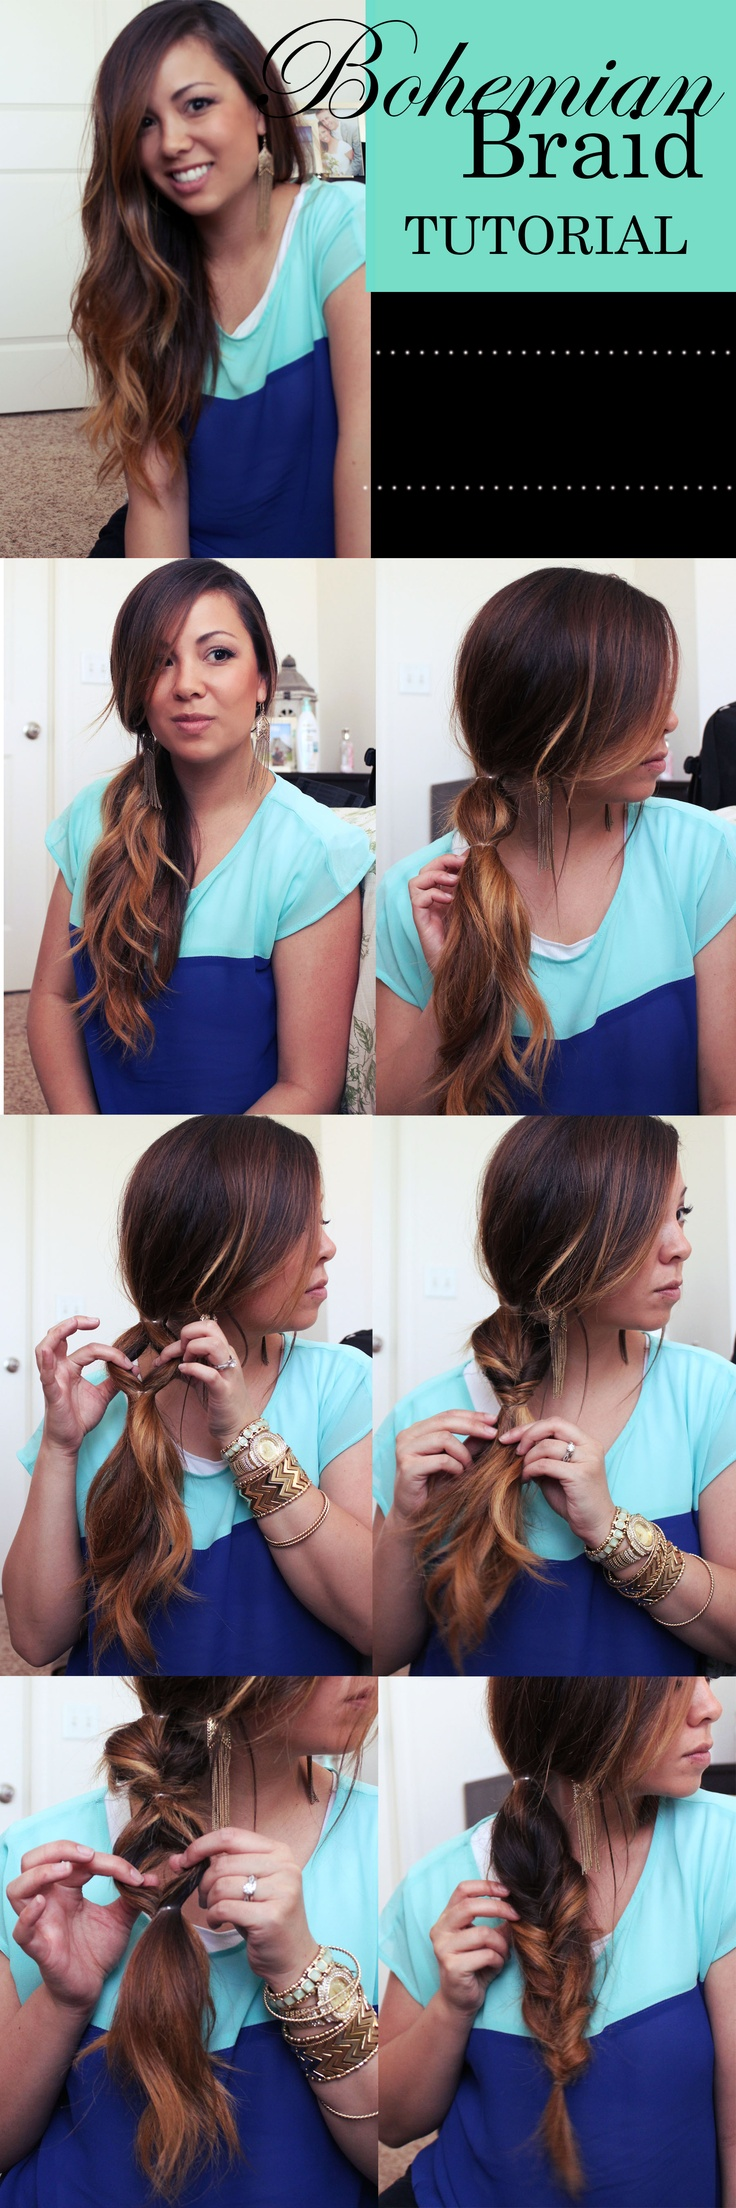 Bohemian Braid Hairstyle Tutorial